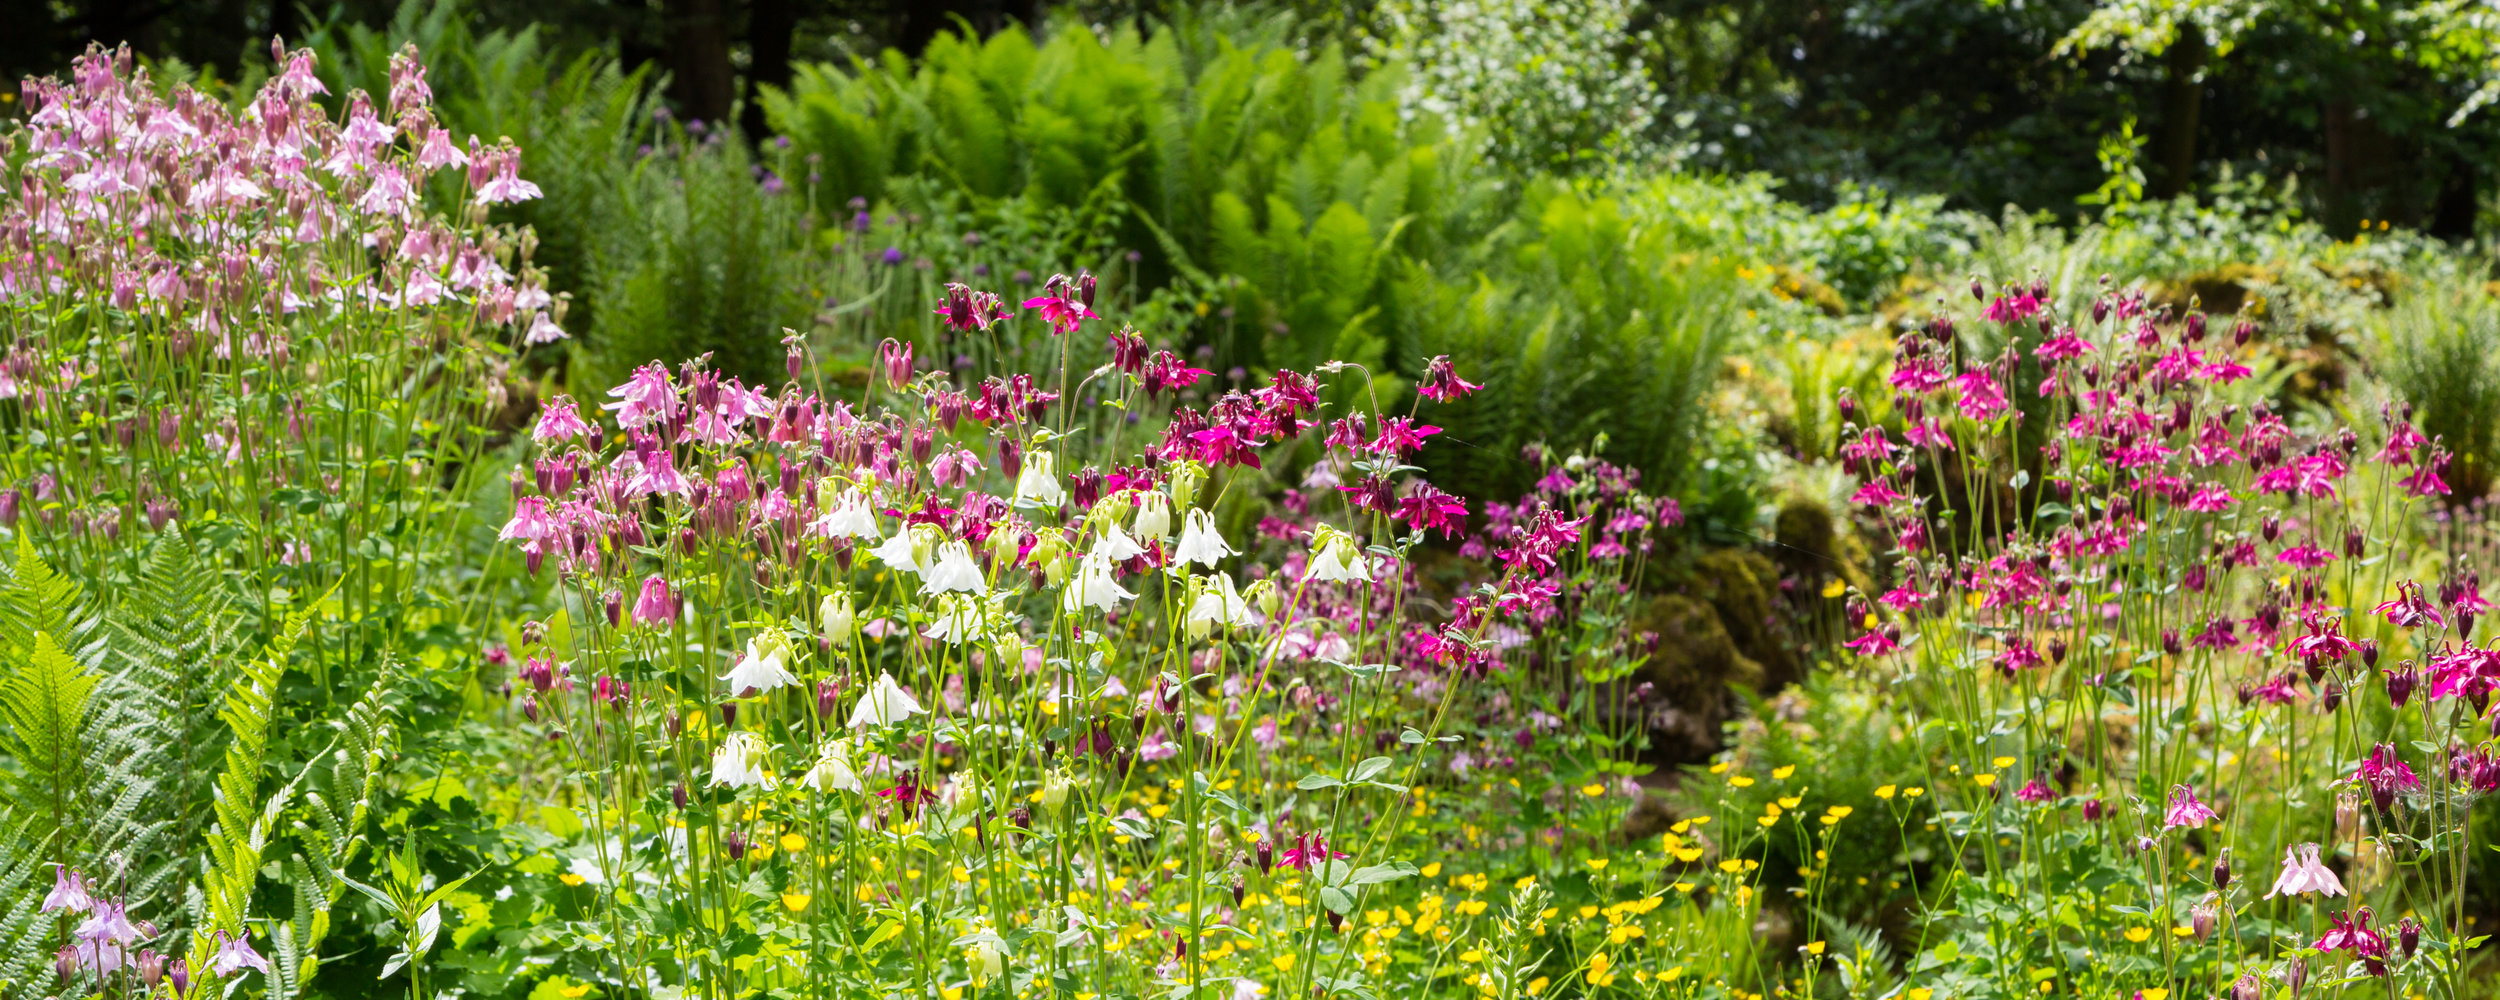 The delicate flowers of self-sown  Aquilegia  are enhanced by the ferny backdrop throughout the Rockery Garden at Lowther Castle. Image  Chris Denning/Verve Garden Design.